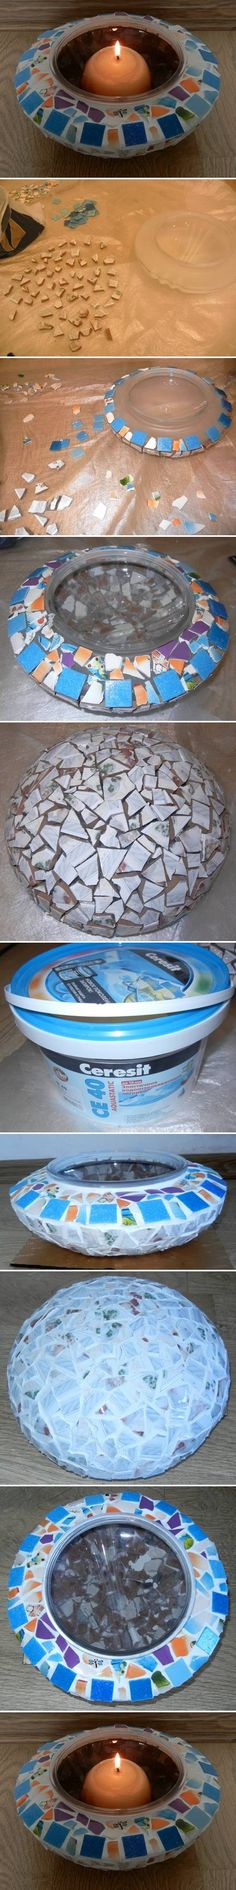 DIY Mosaic Candle Holder DIY Projects | UsefulDIY.com